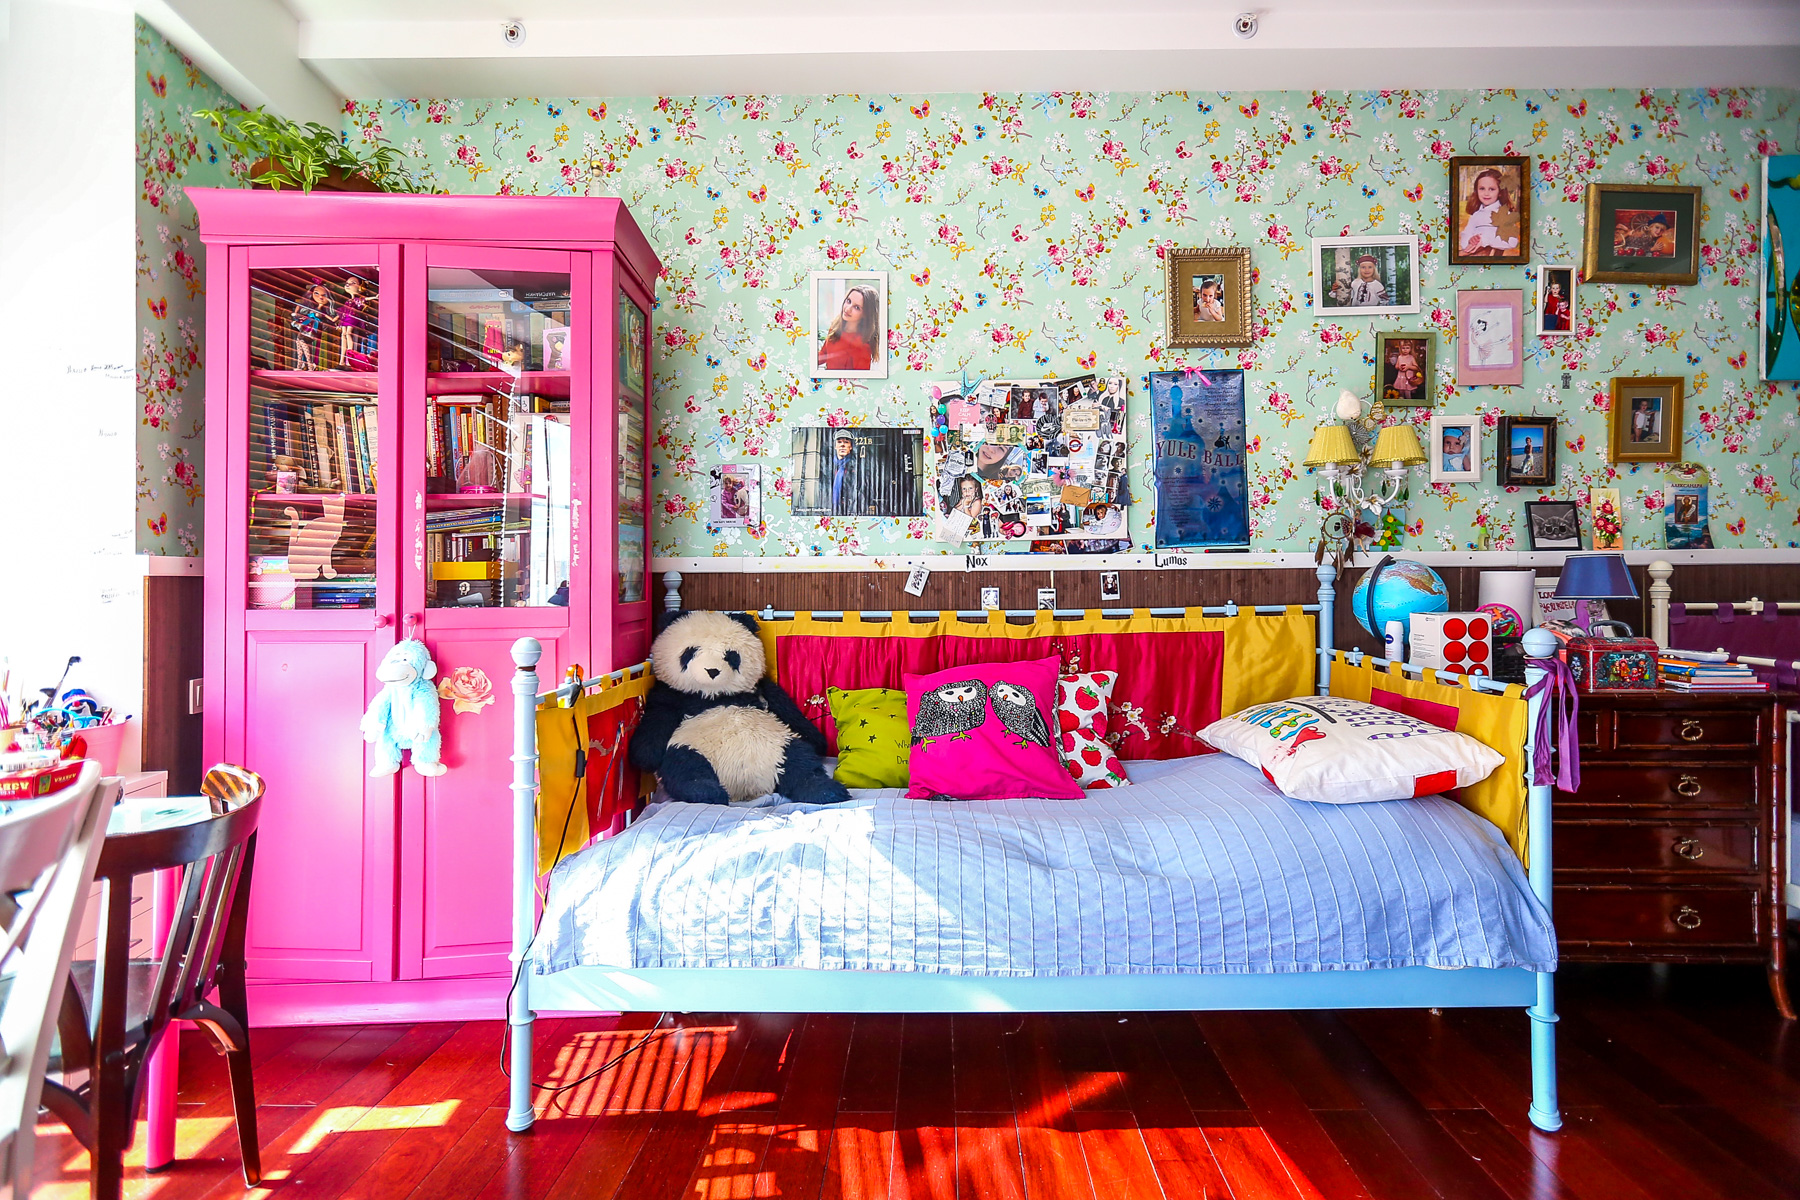 Home tour: Chinoiserie girls bedroom